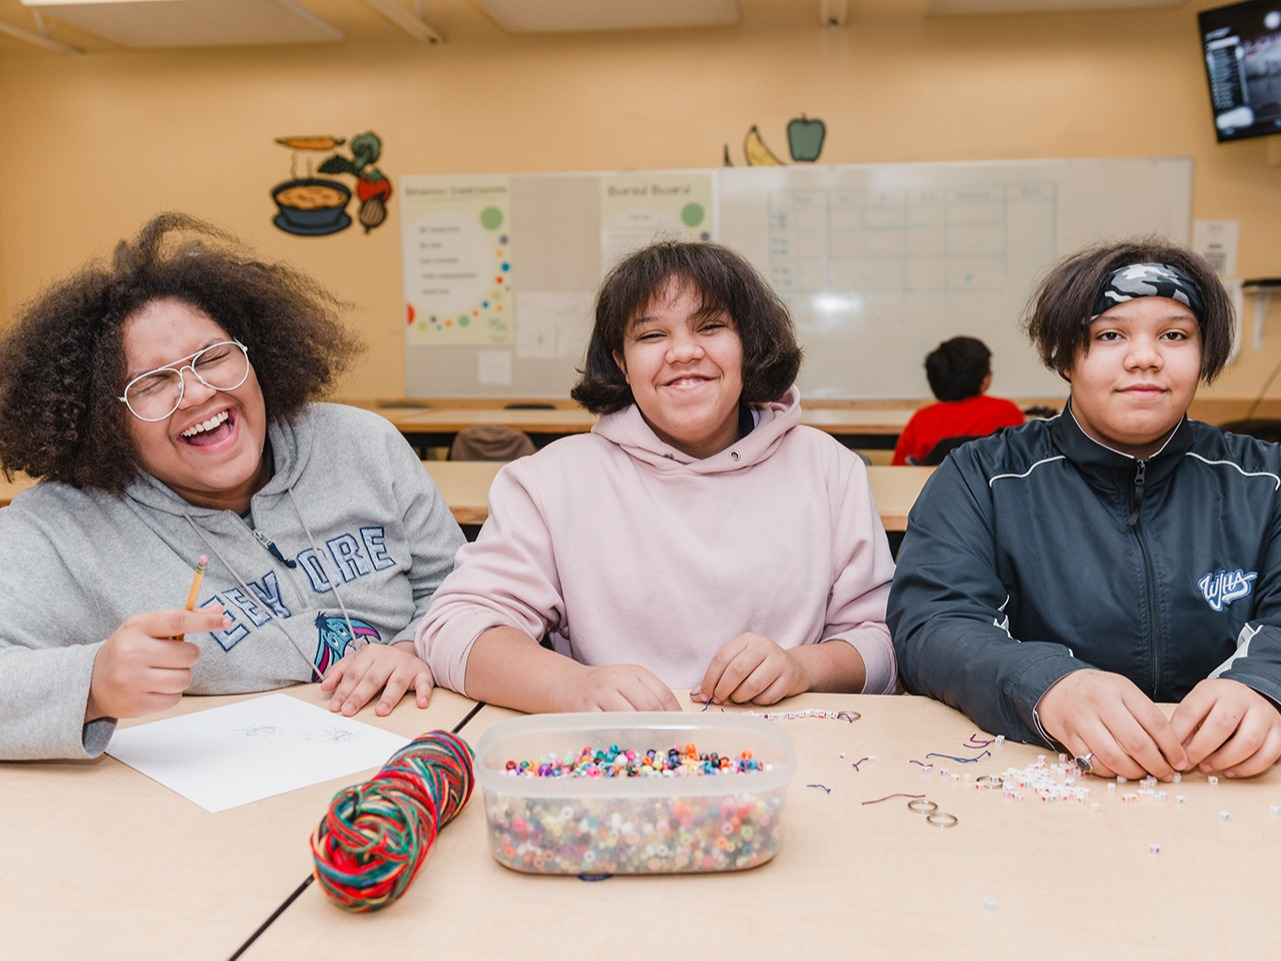 3 children sitting at a table laughing and smiling for the camera. The table in front of them has craft supplies like yarn and beads.